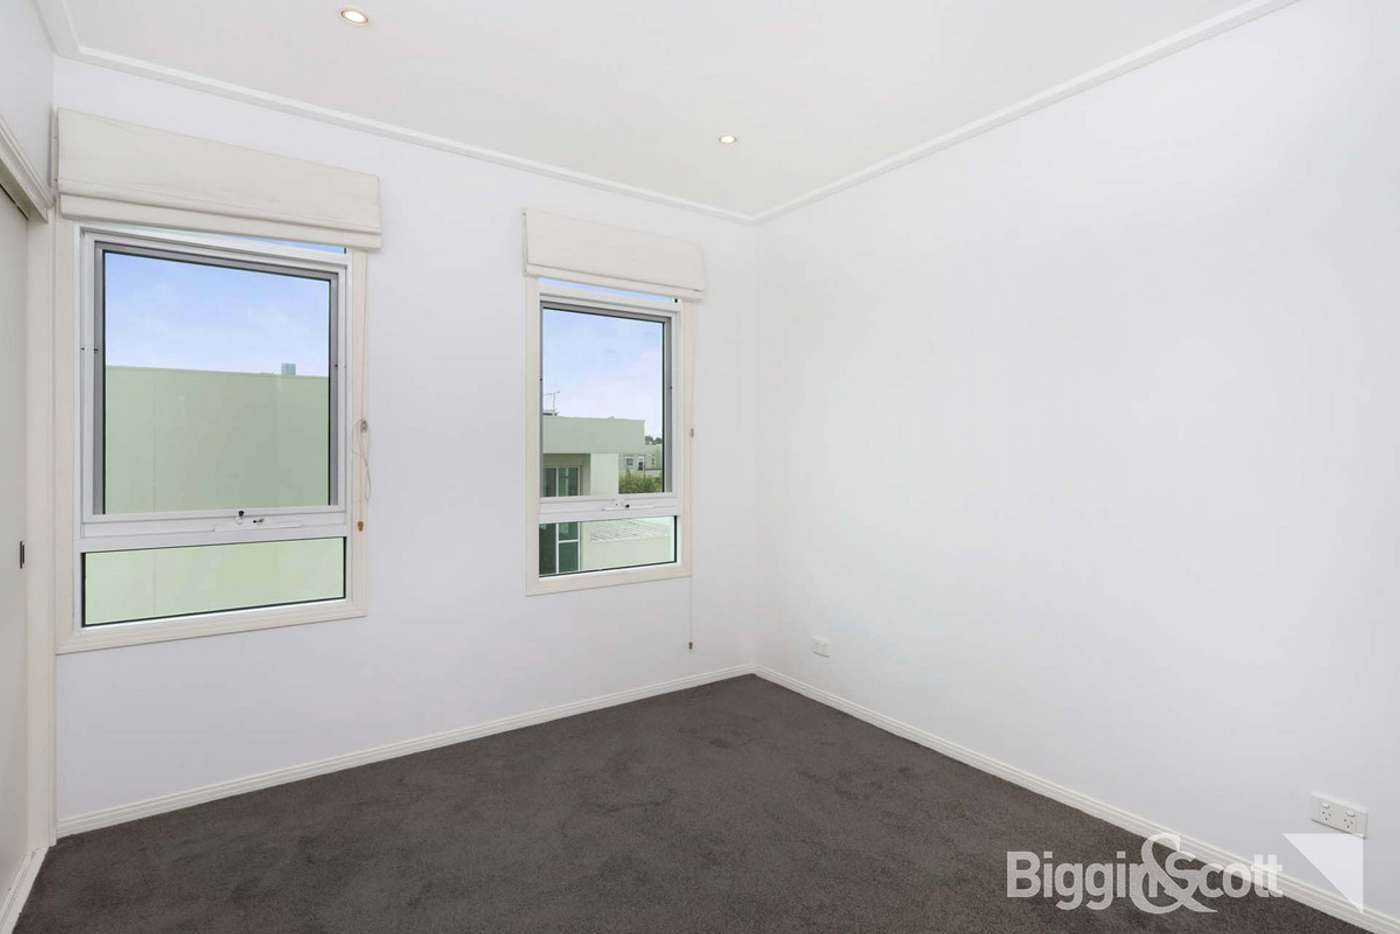 Sixth view of Homely apartment listing, 38/1 Graham Street, Port Melbourne VIC 3207